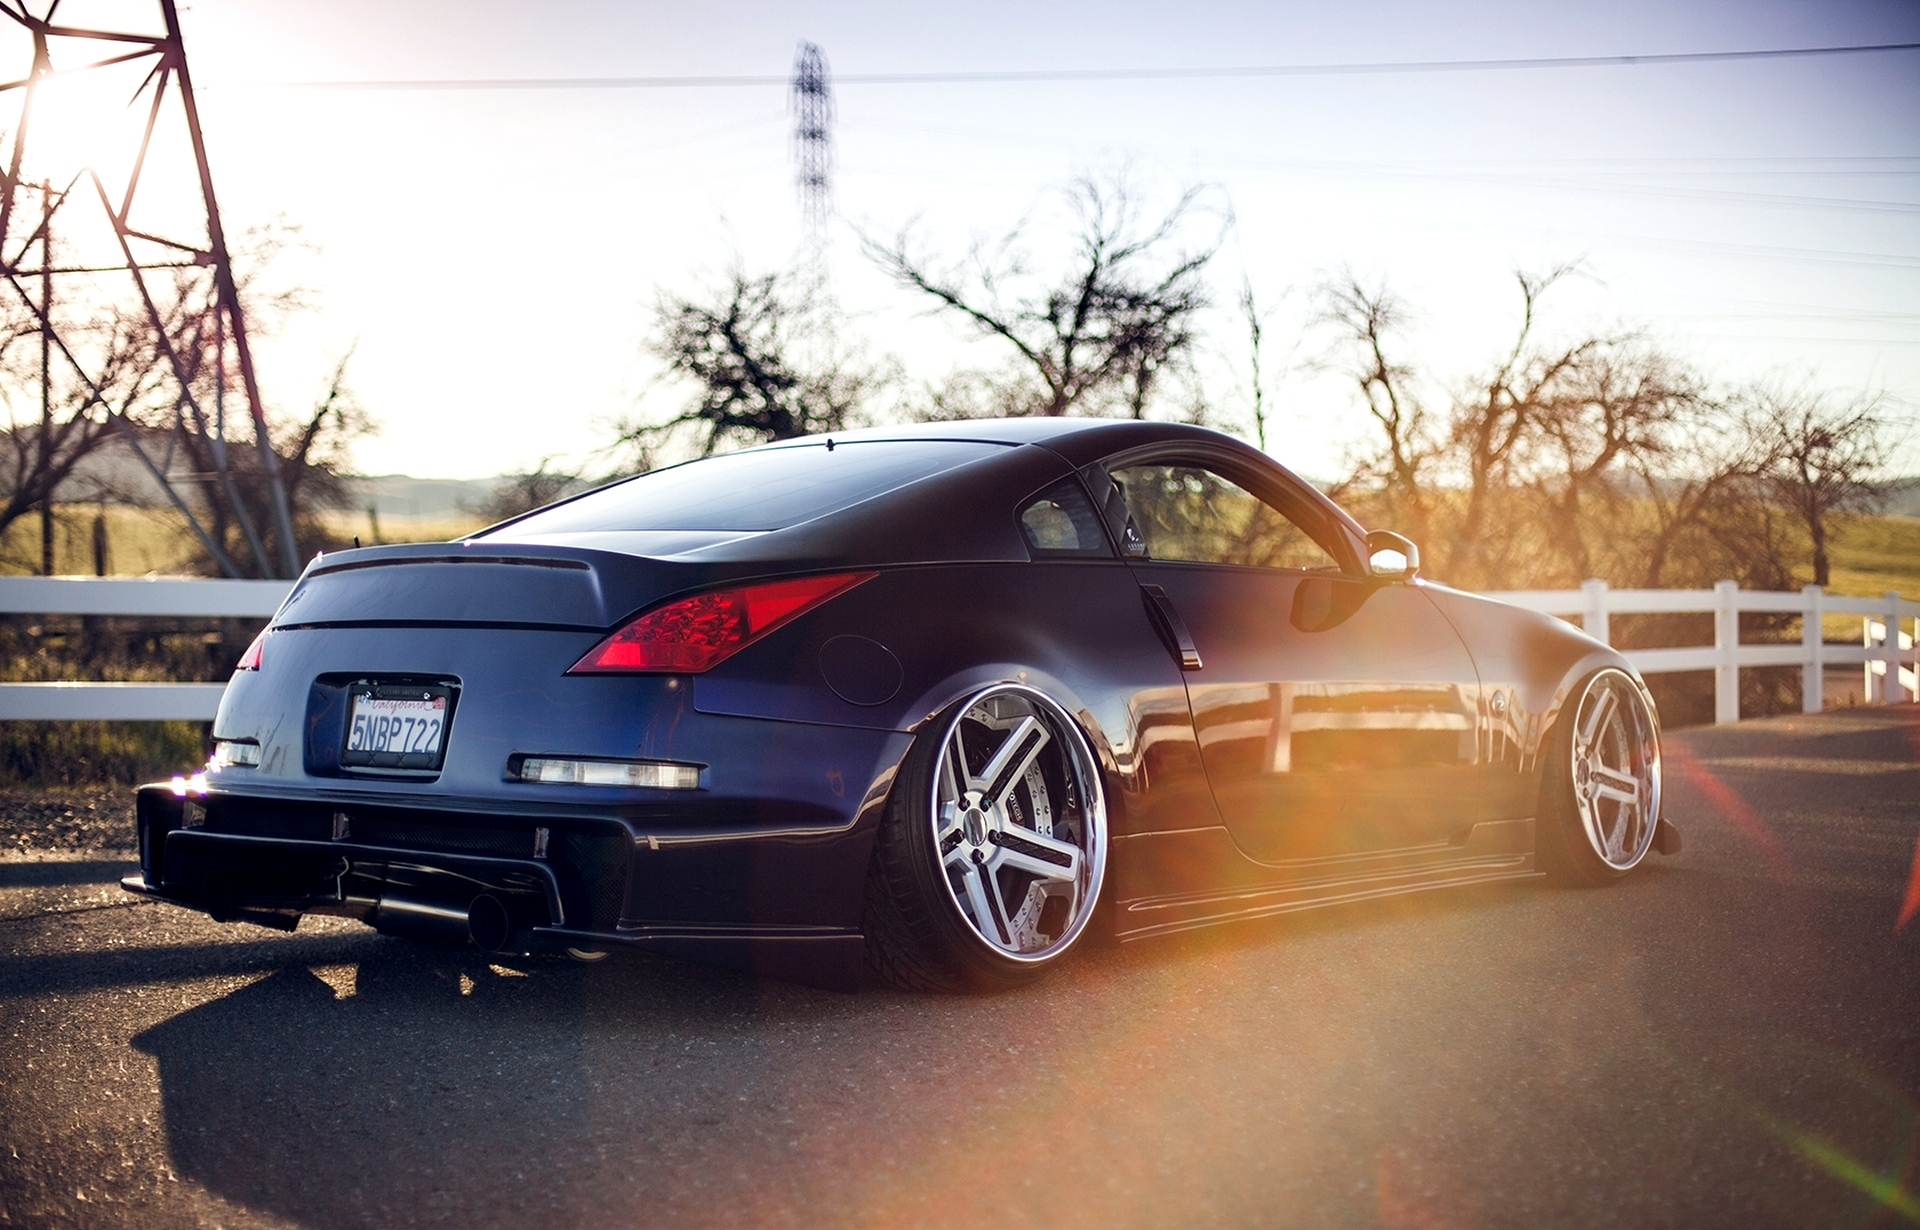 nissan 350z tuning twin turbo stance wallpaper 1920x1230. Black Bedroom Furniture Sets. Home Design Ideas